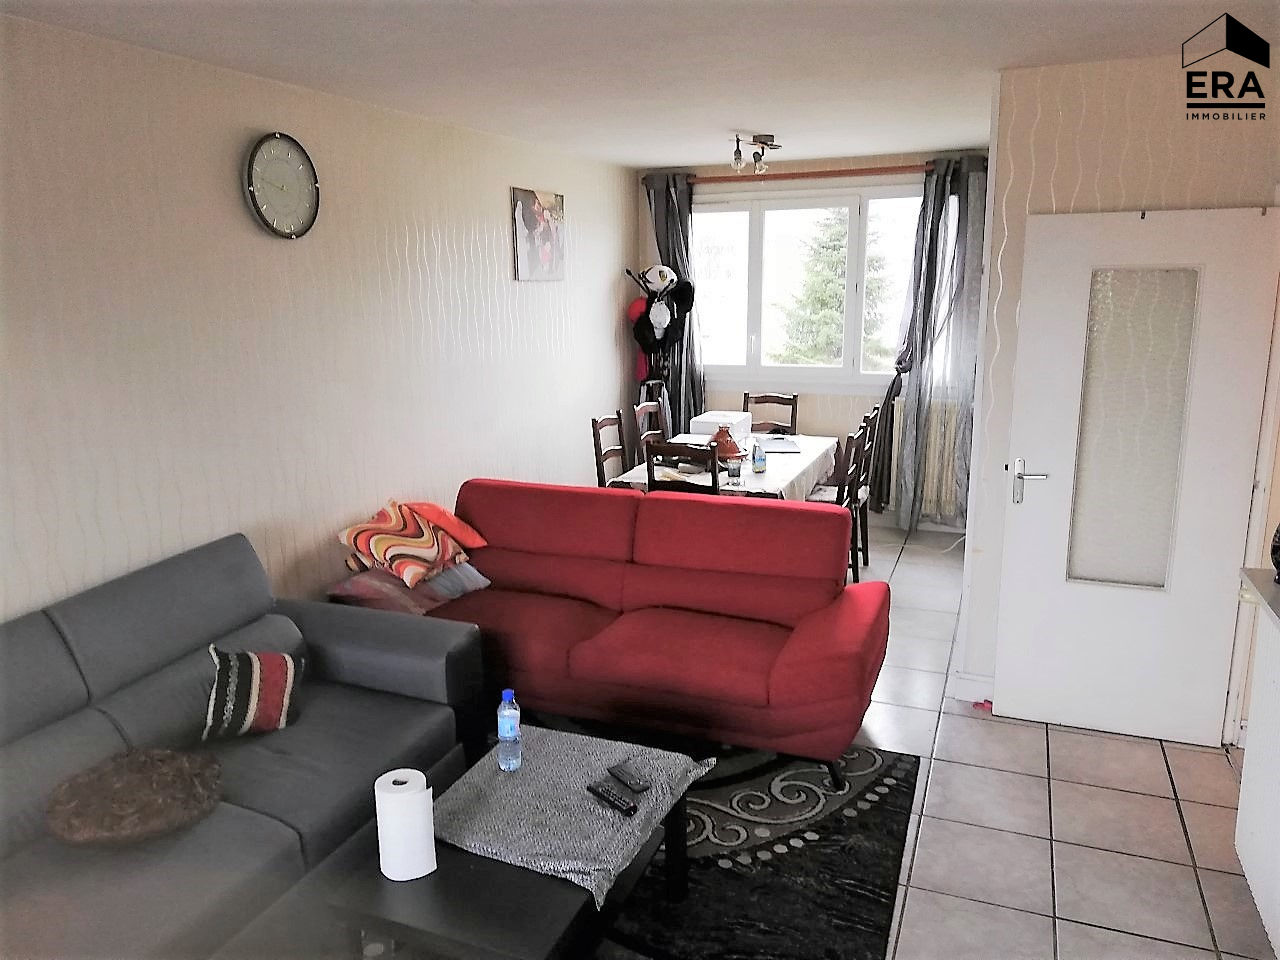 A Vendre Clermont-Ferrand . La Plaine.  Appartement 80.38 m2 + cave + garage